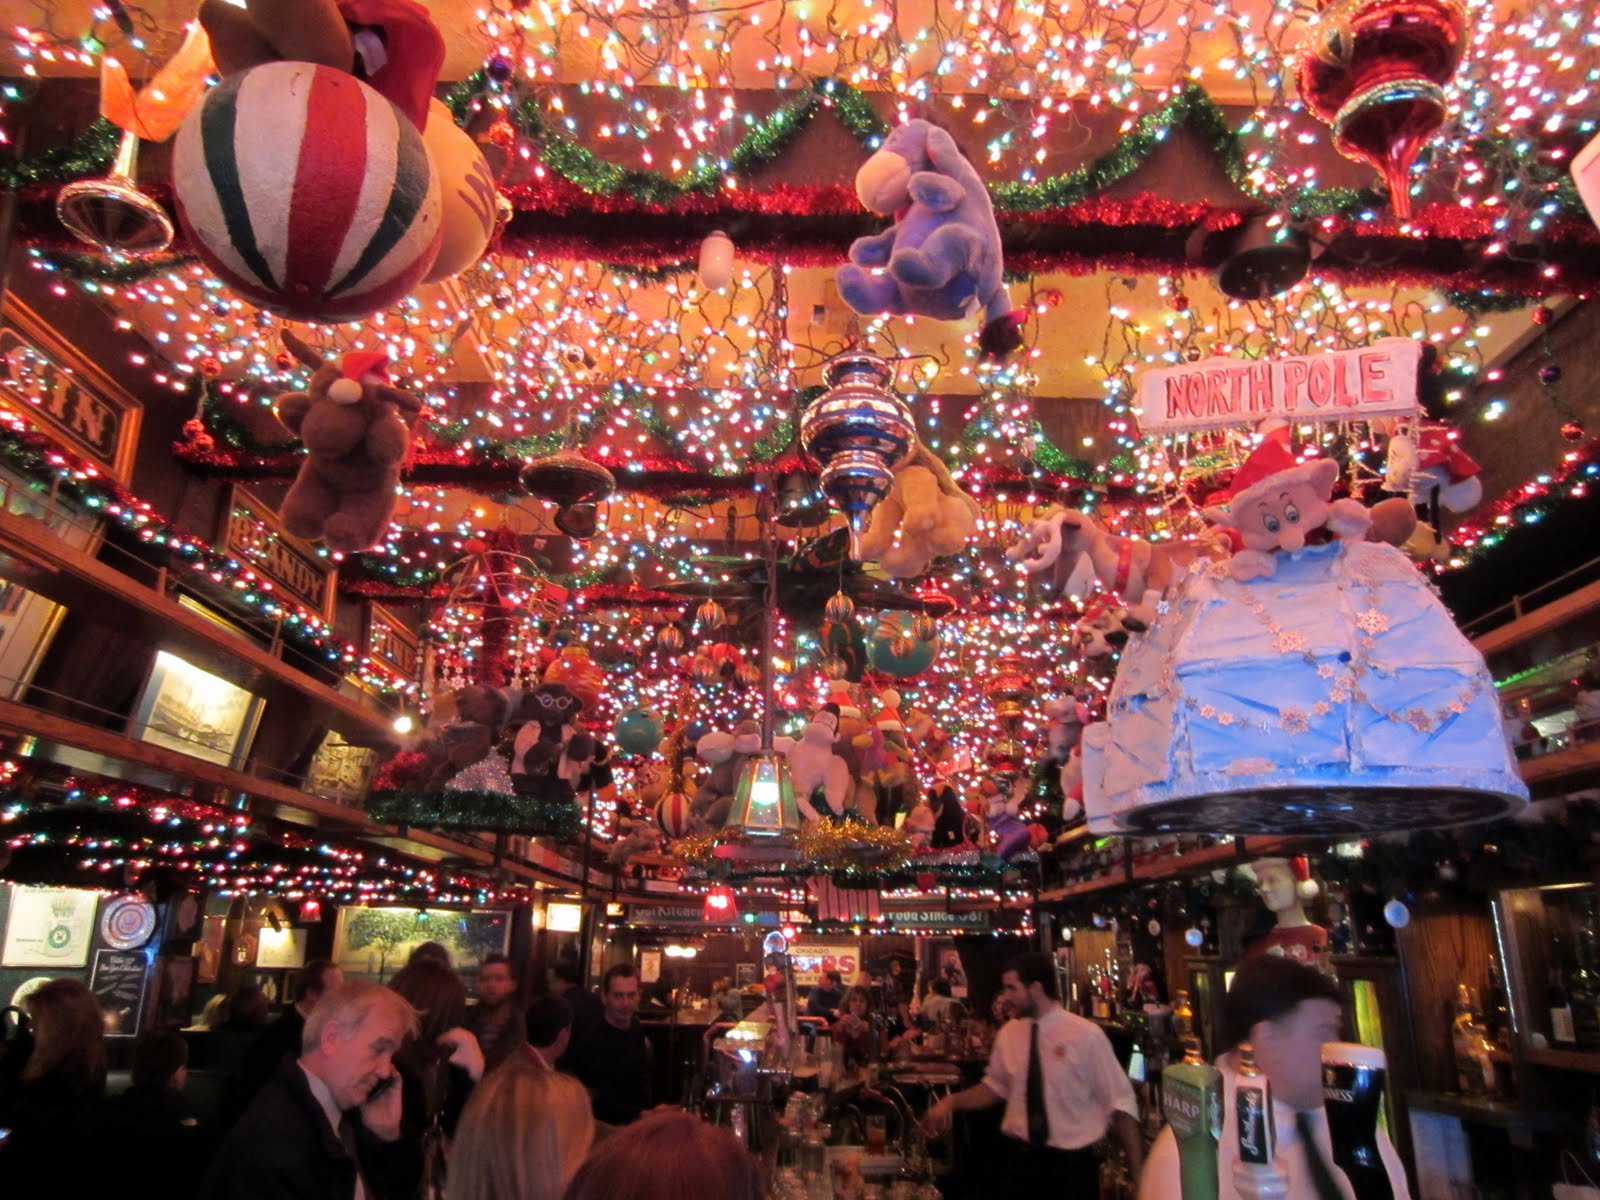 chicago boyz blog archive butch mcguires has christmas spirit - Chicago Christmas Market